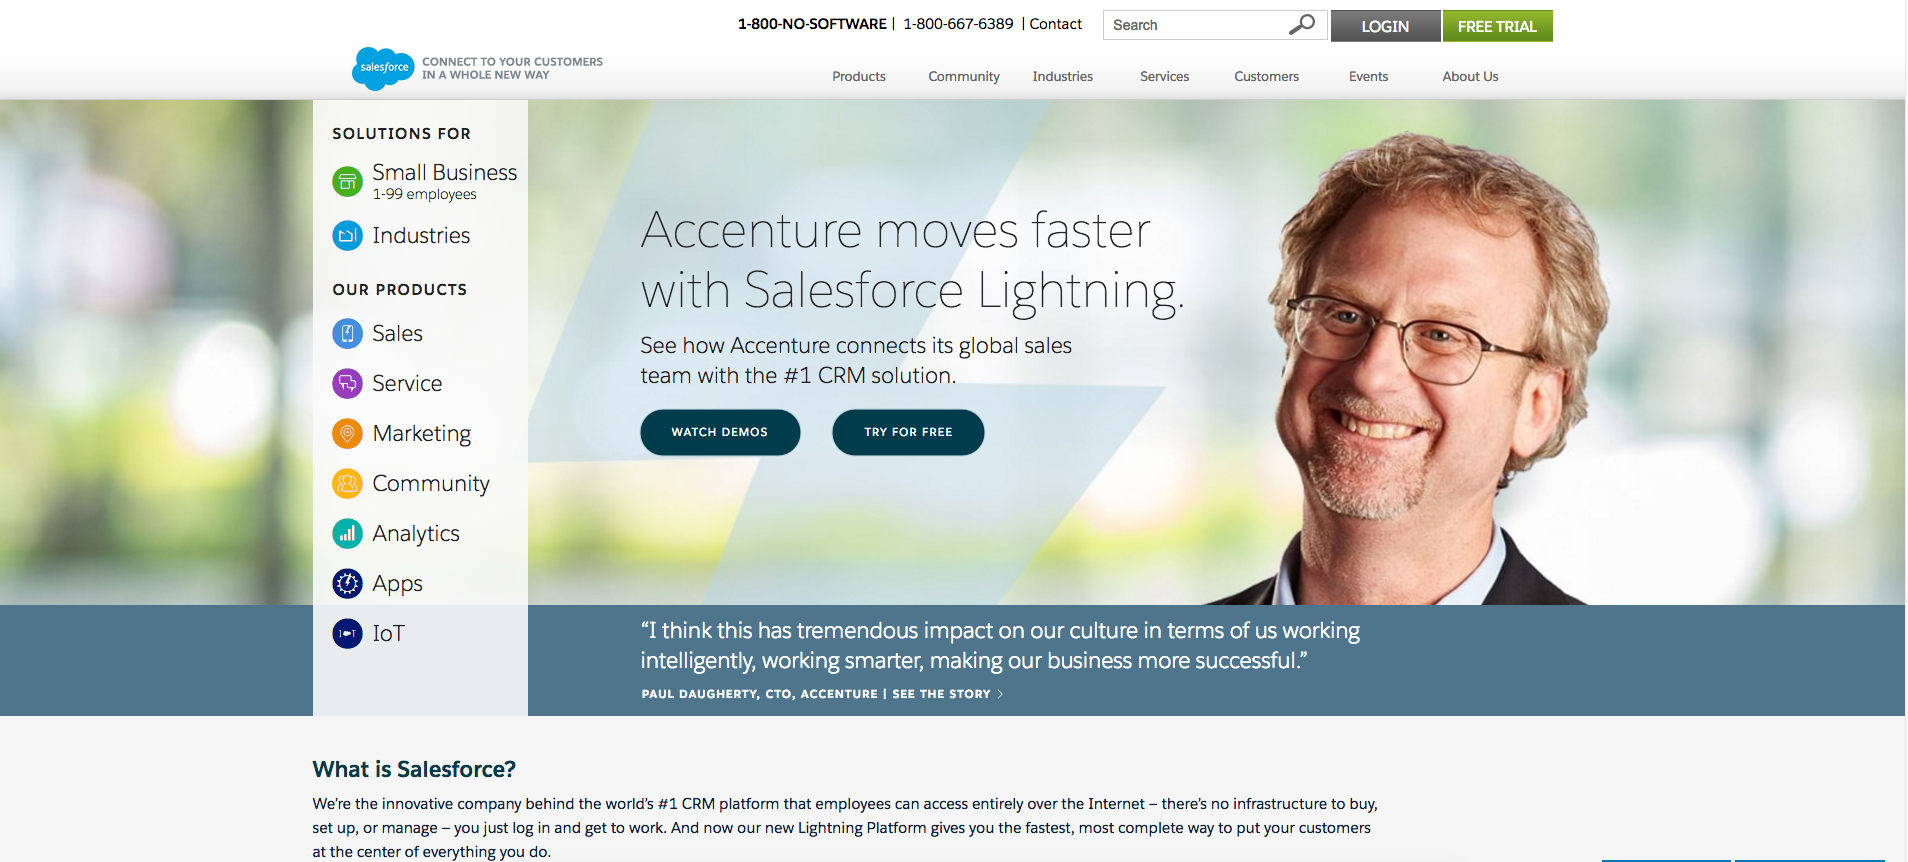 value-proposition-example-salesforce.png